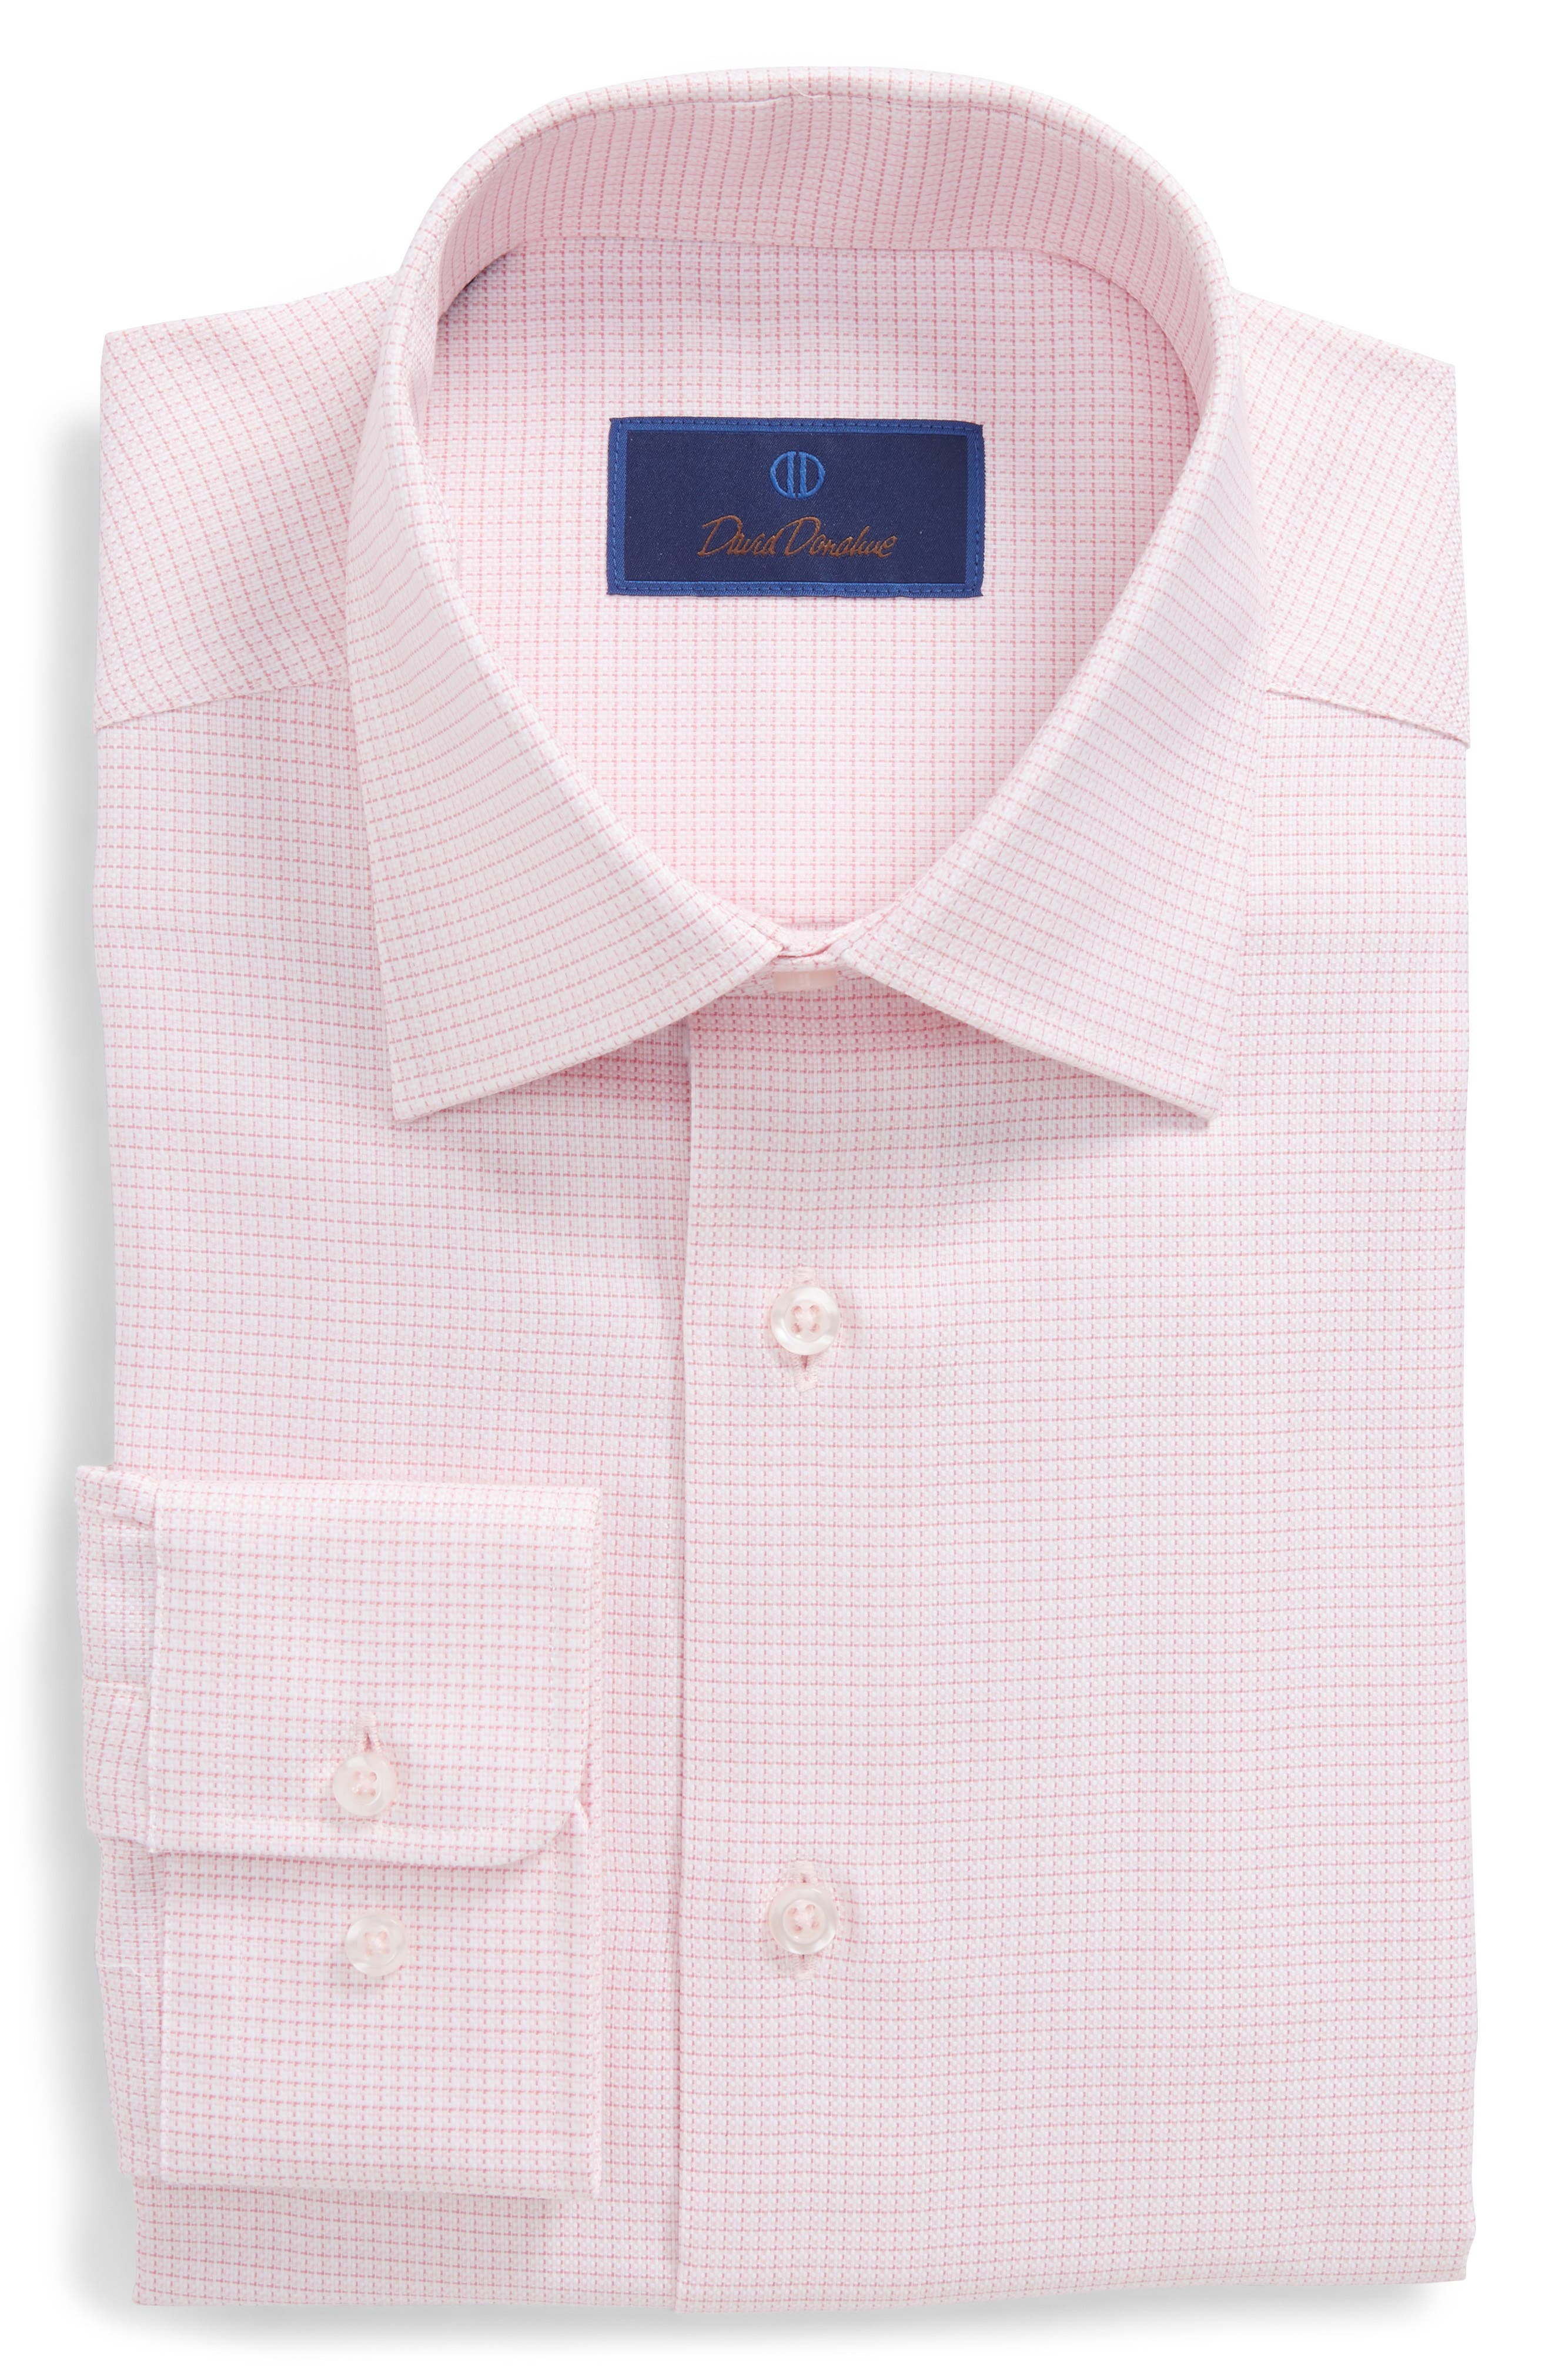 Regular Fit Check Dress Shirt,                             Main thumbnail 1, color,                             650